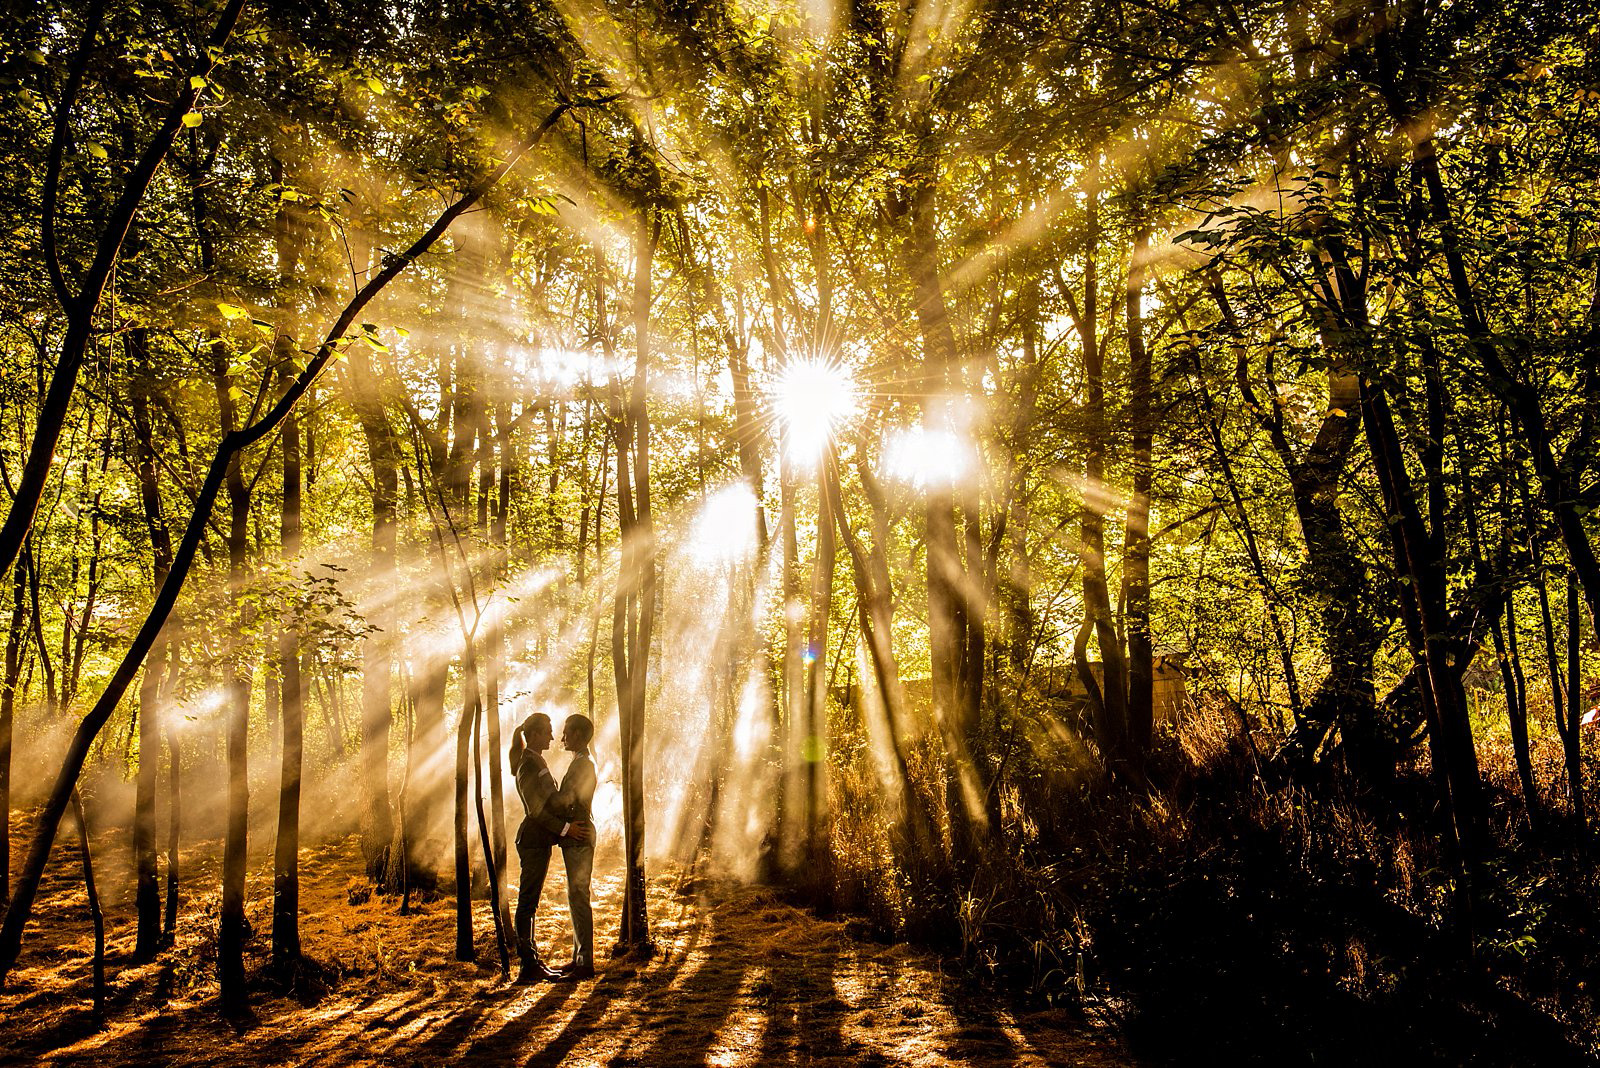 Gay wedding in a forrest with sunbeams